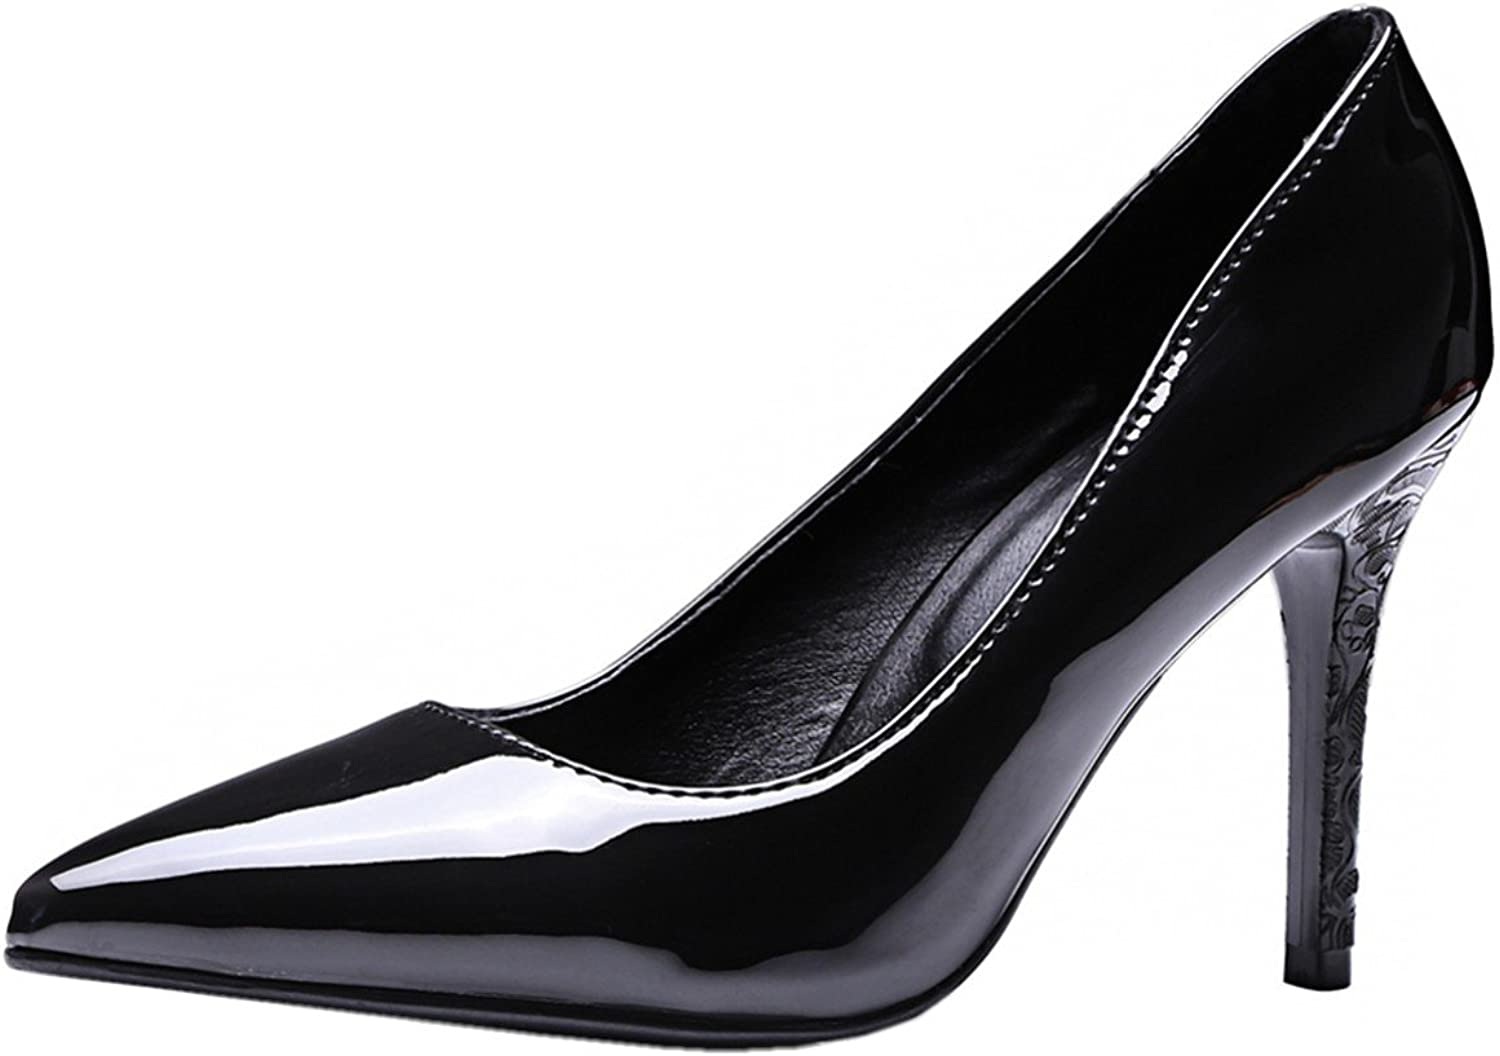 Rongzhi Womens High Heels Stiletto Slip on Pointed Toe Party Dress Classic Pumps shoes Patent Leather